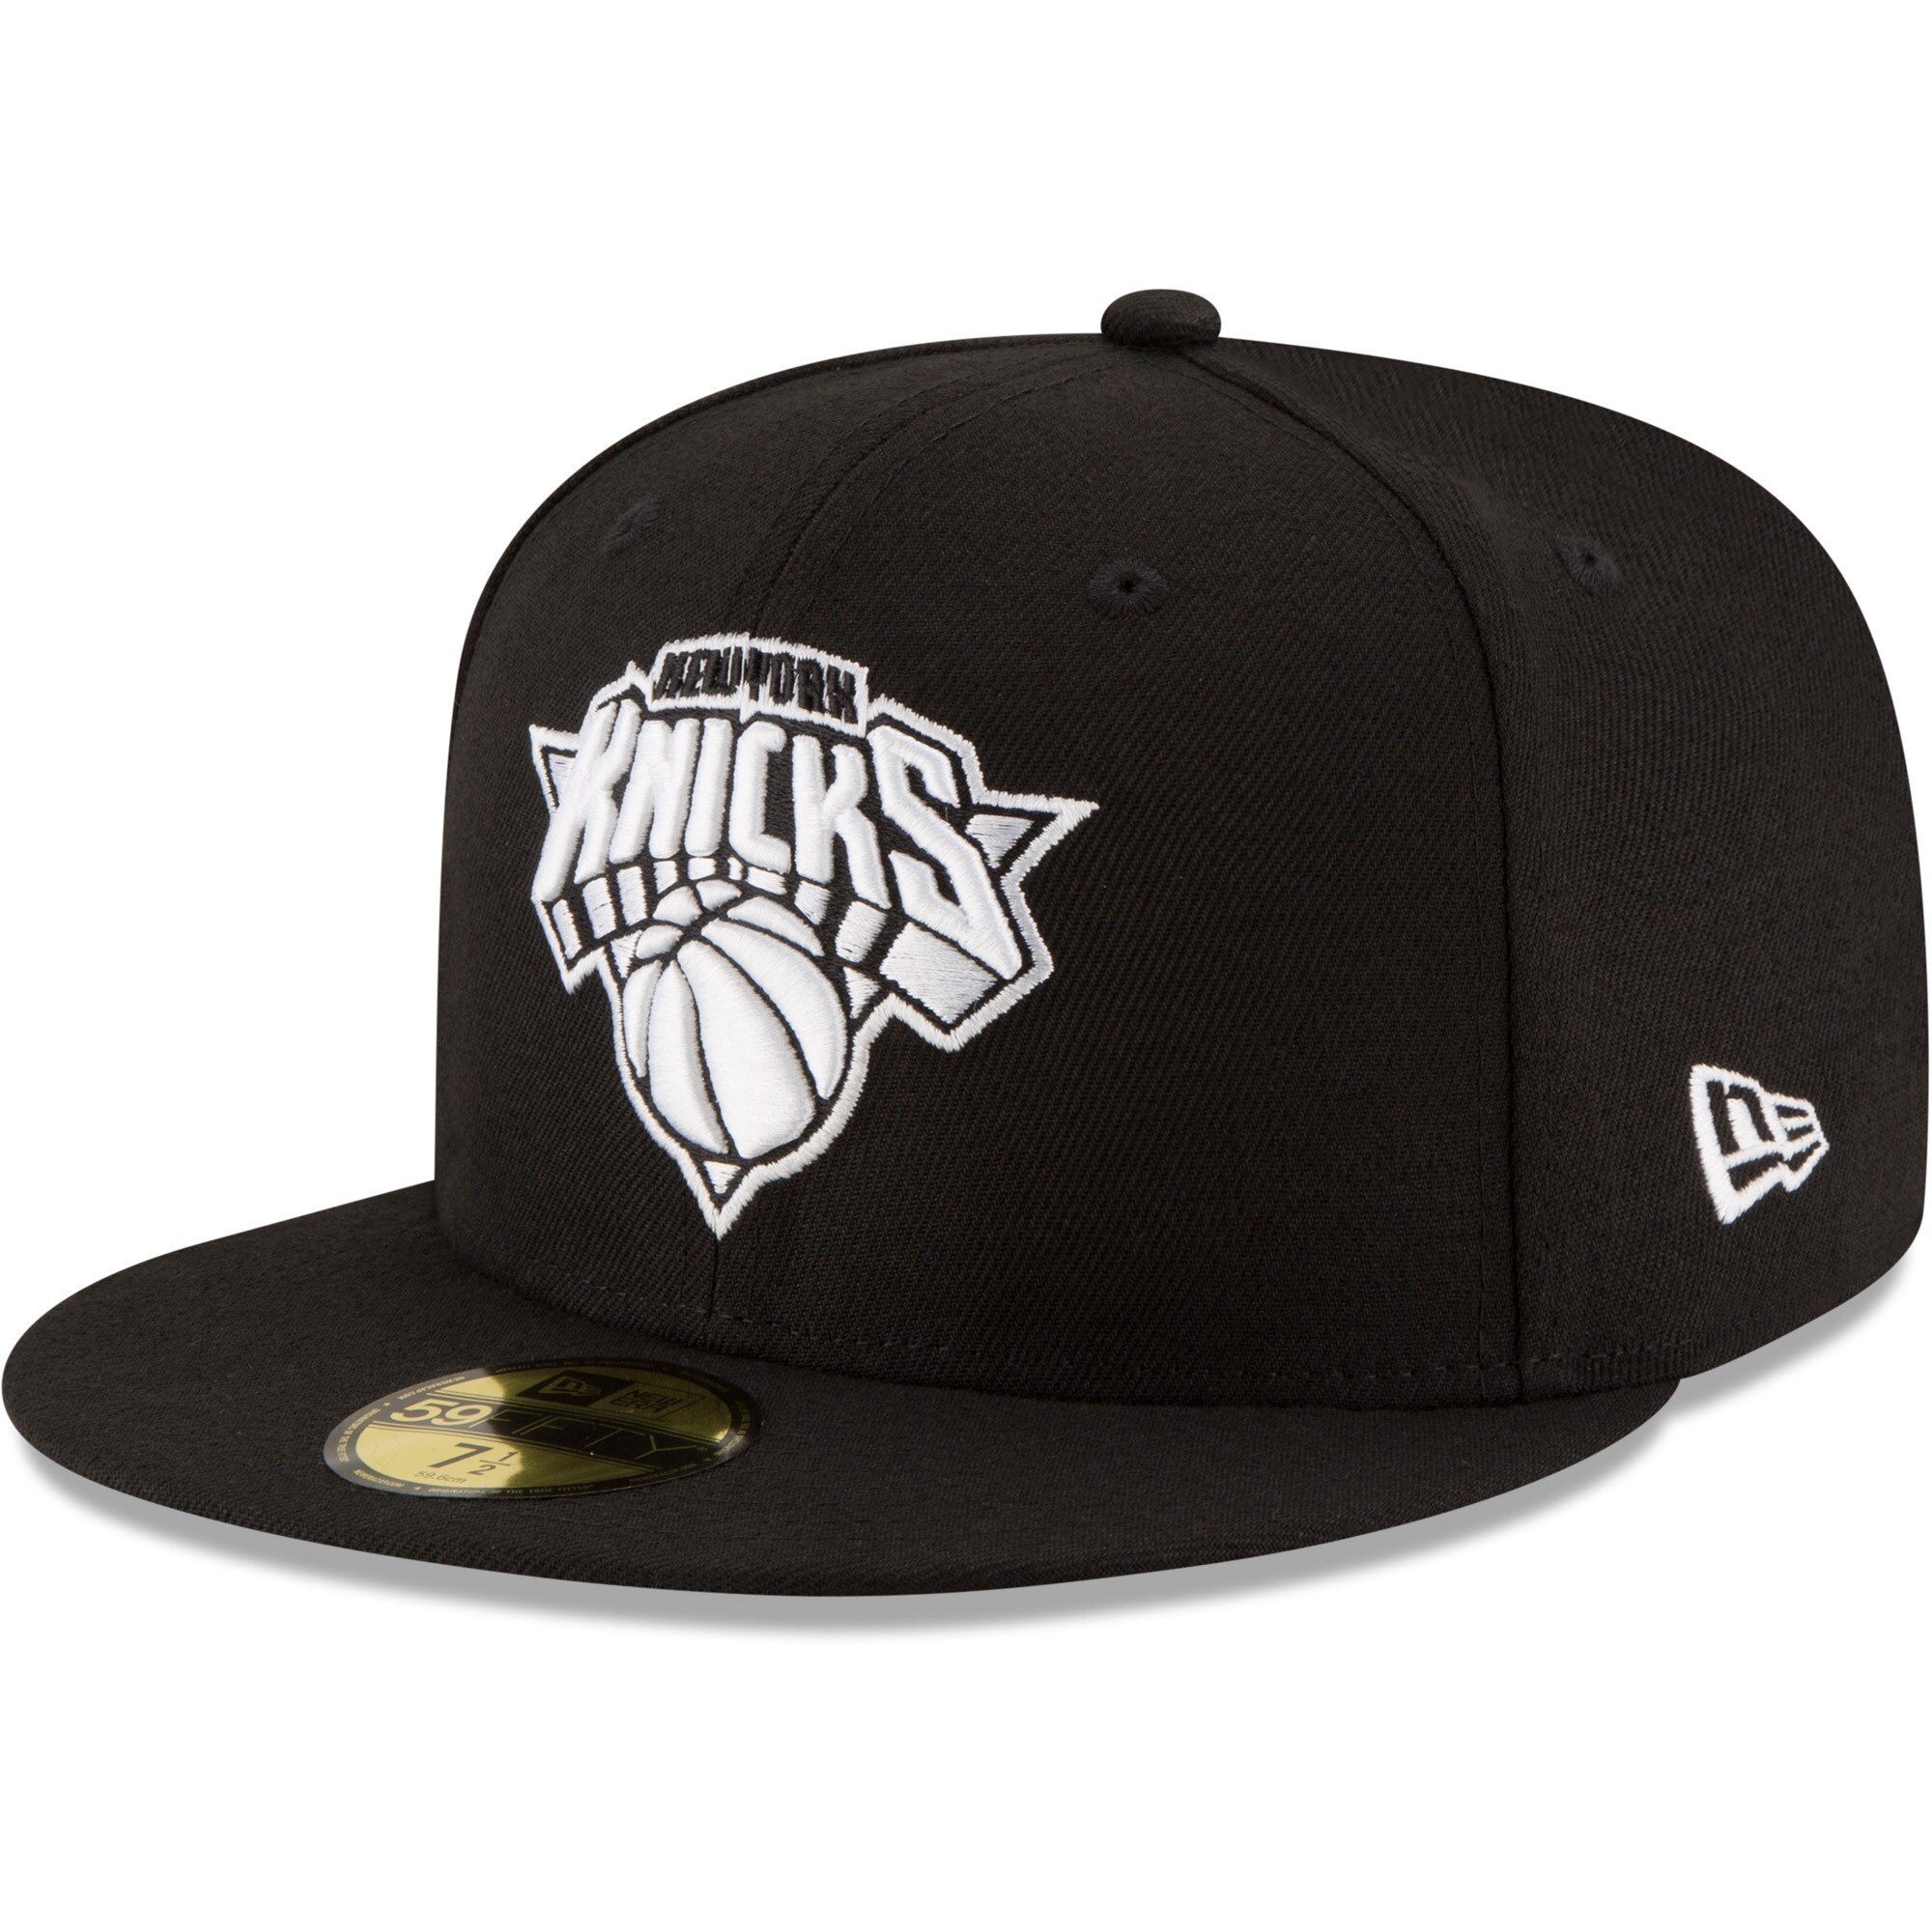 New York Knicks New Era Black & White Logo 59FIFTY Fitted Hat - Black